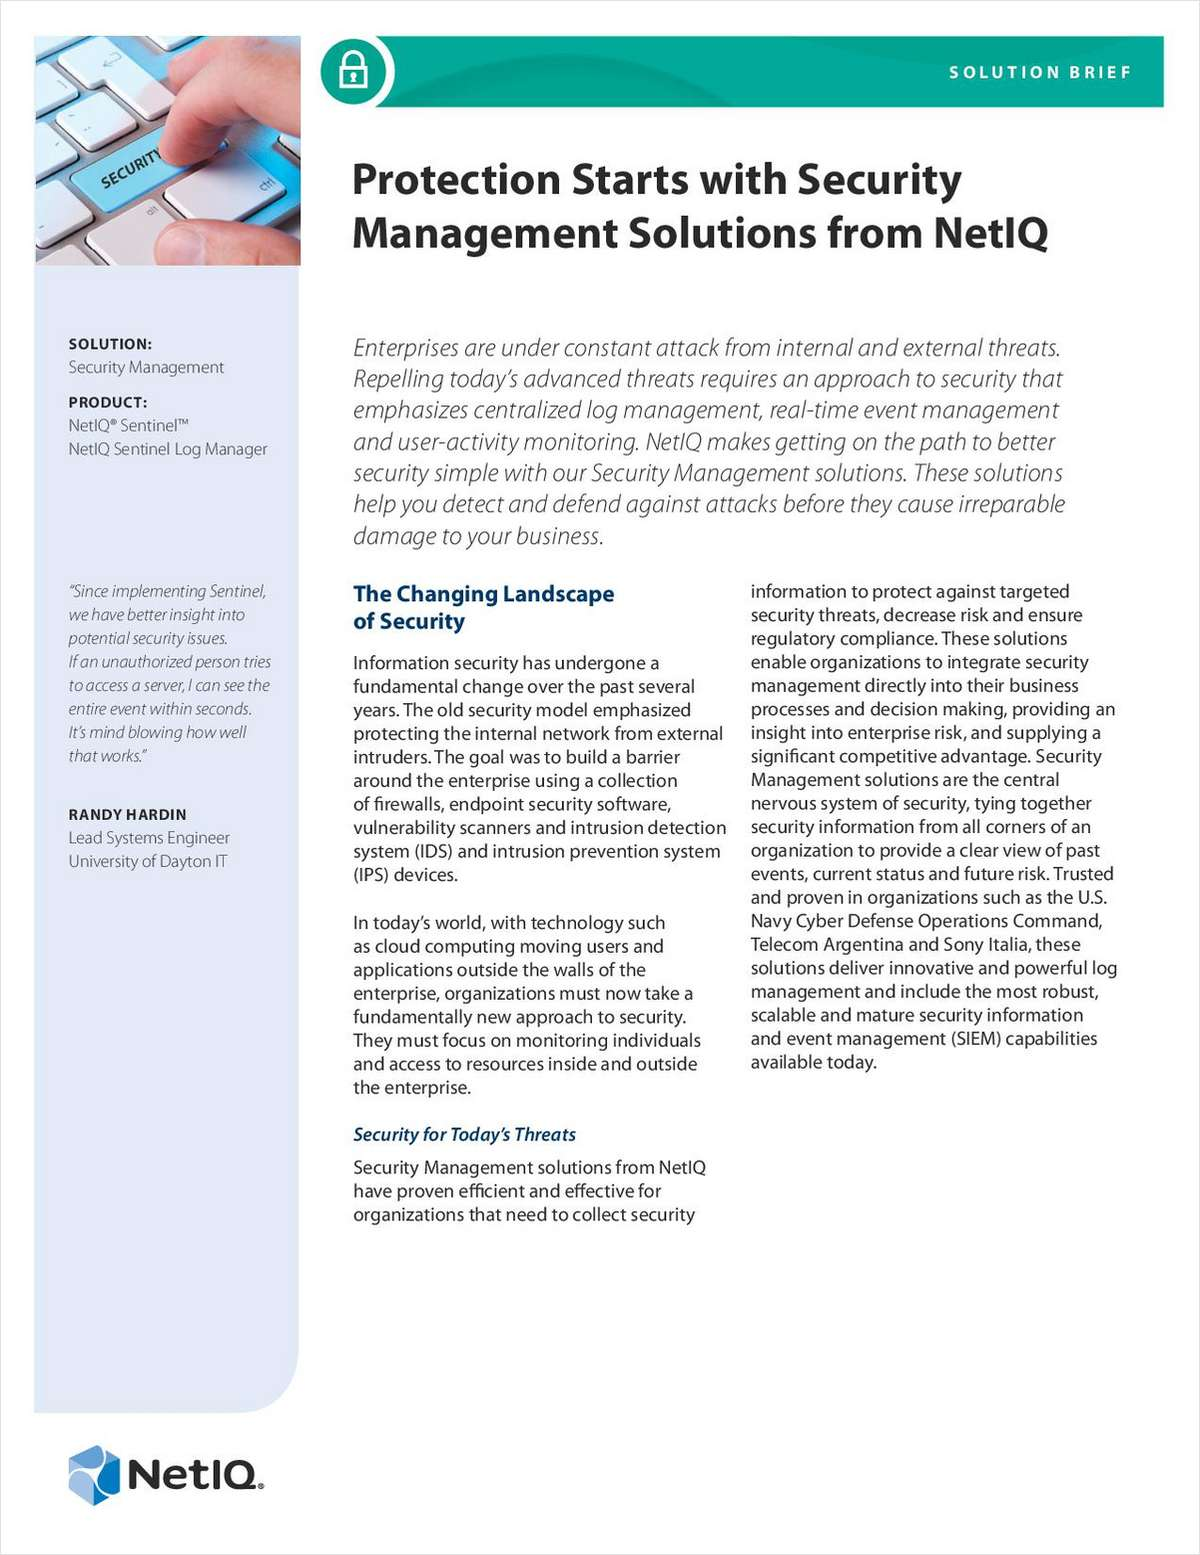 Protection Starts with Security Management Solutions from NetIQ